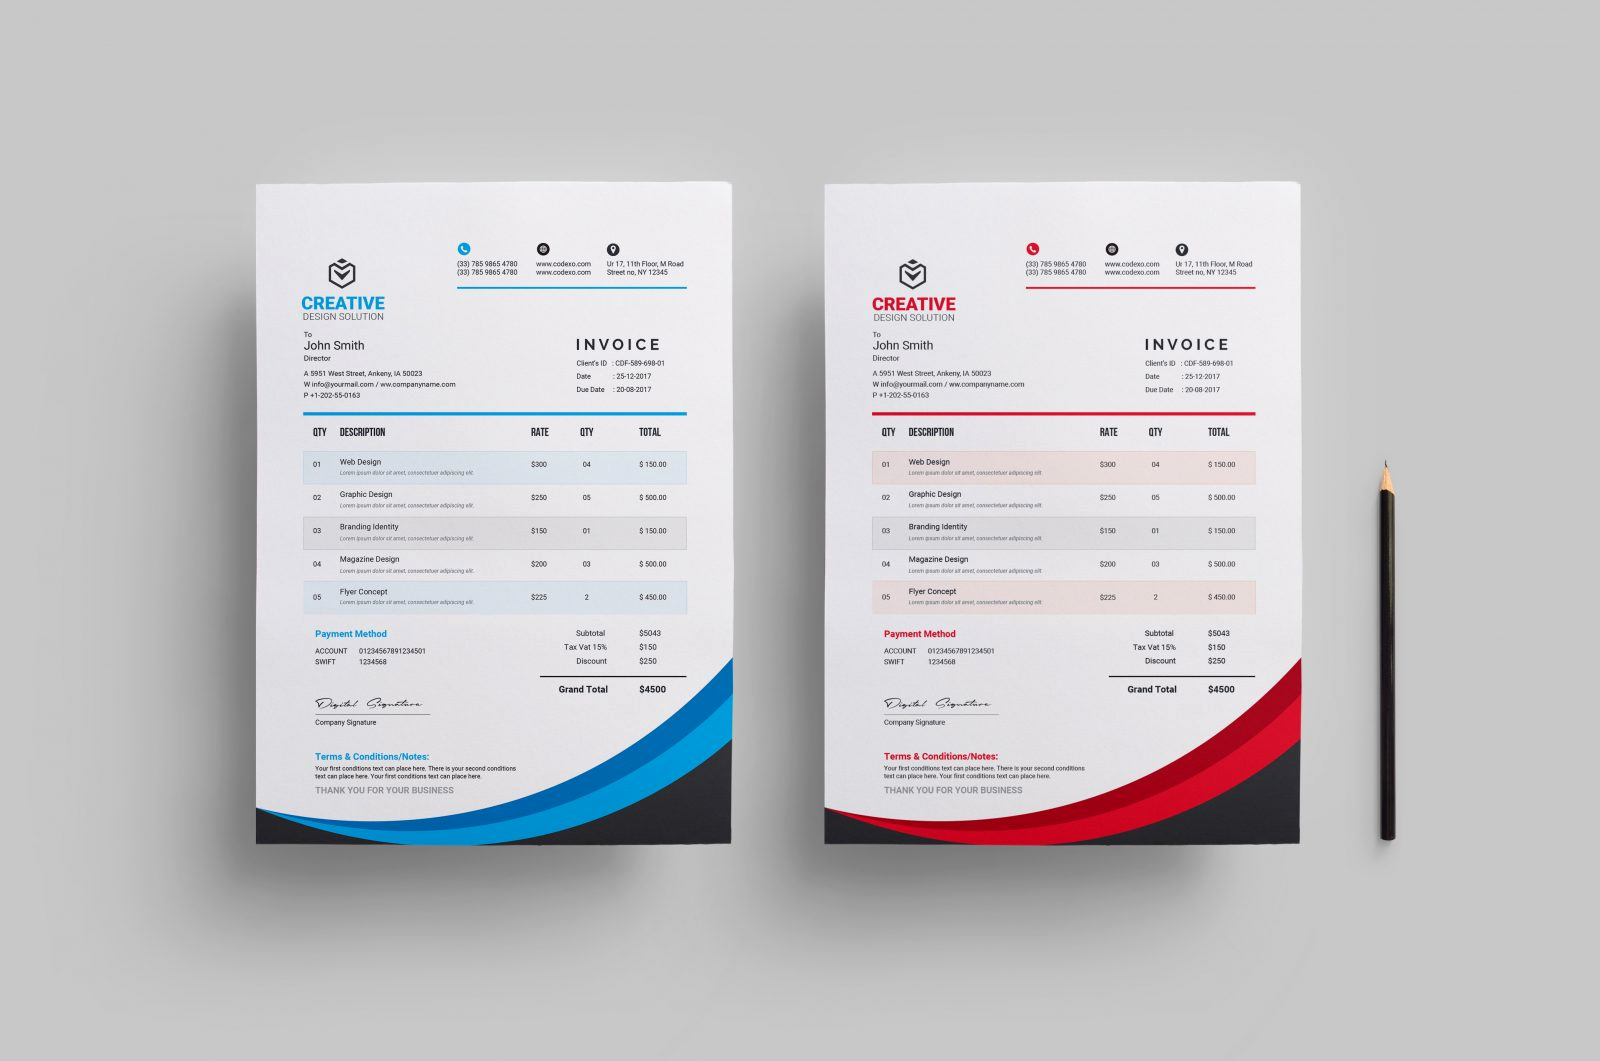 Website Design Invoice Template Unique Creative Stylish Invoice Design Template Catalog